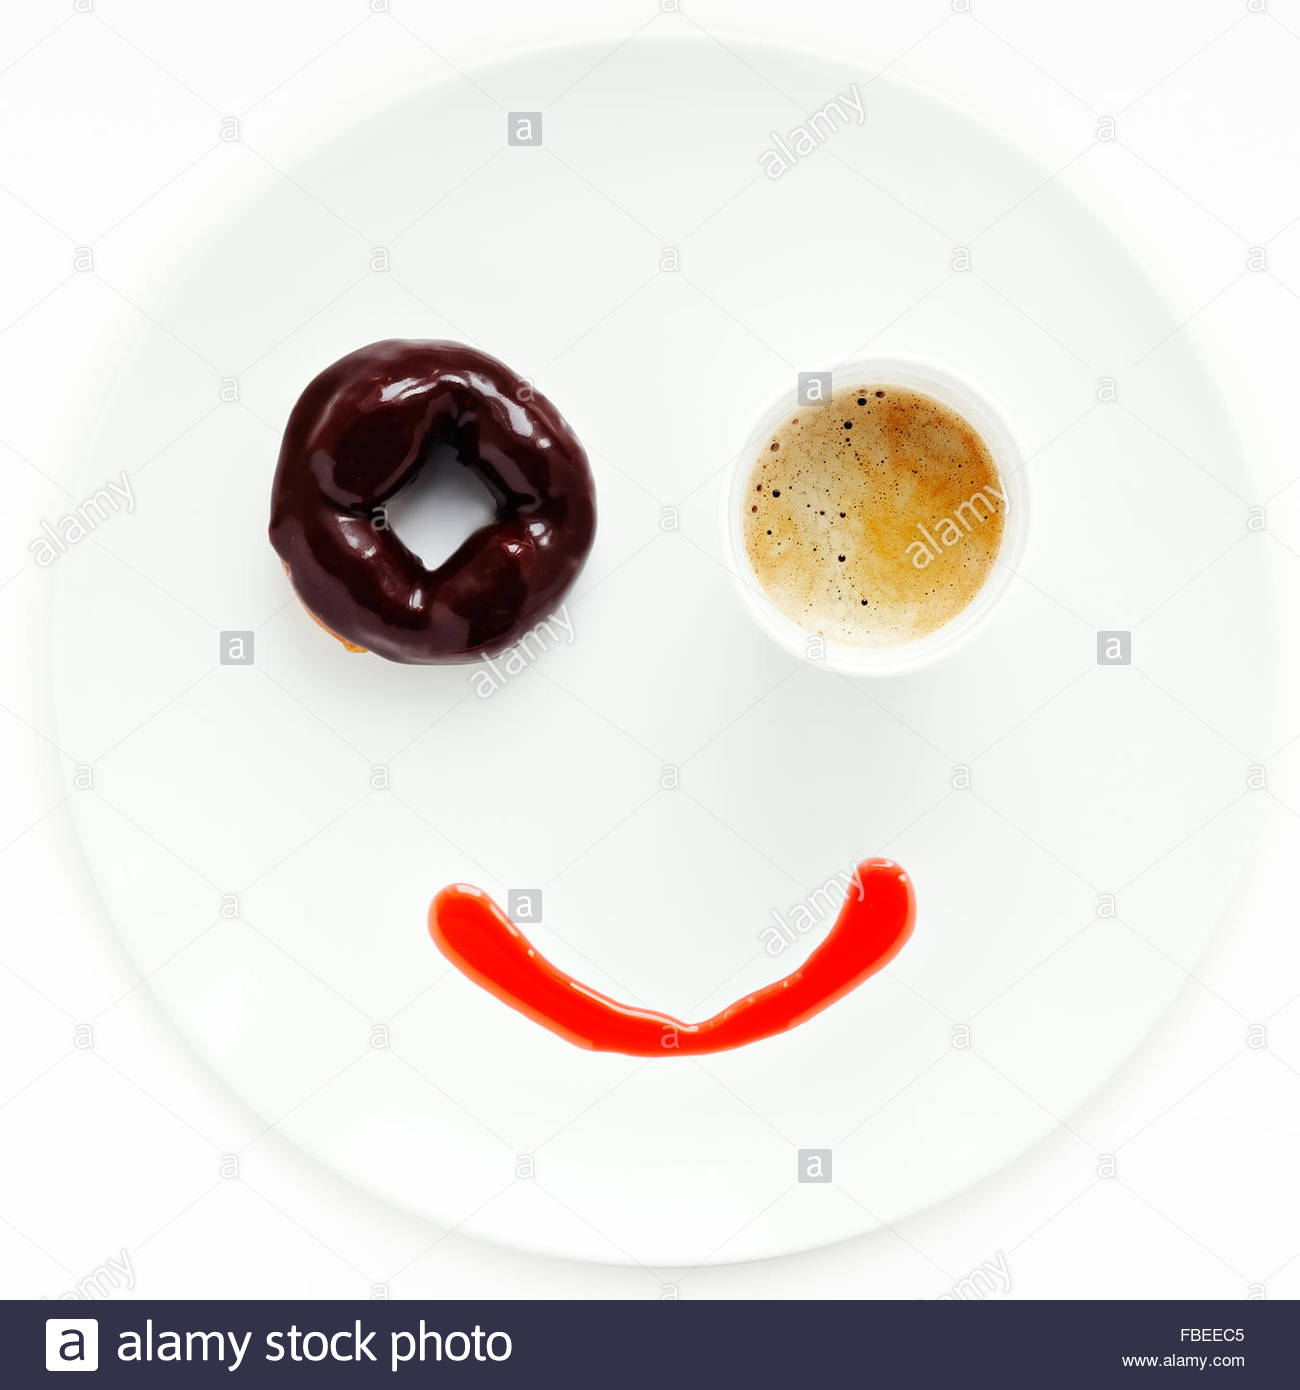 Smiling face made of donut and cup of coffee on the plate - Stock Image